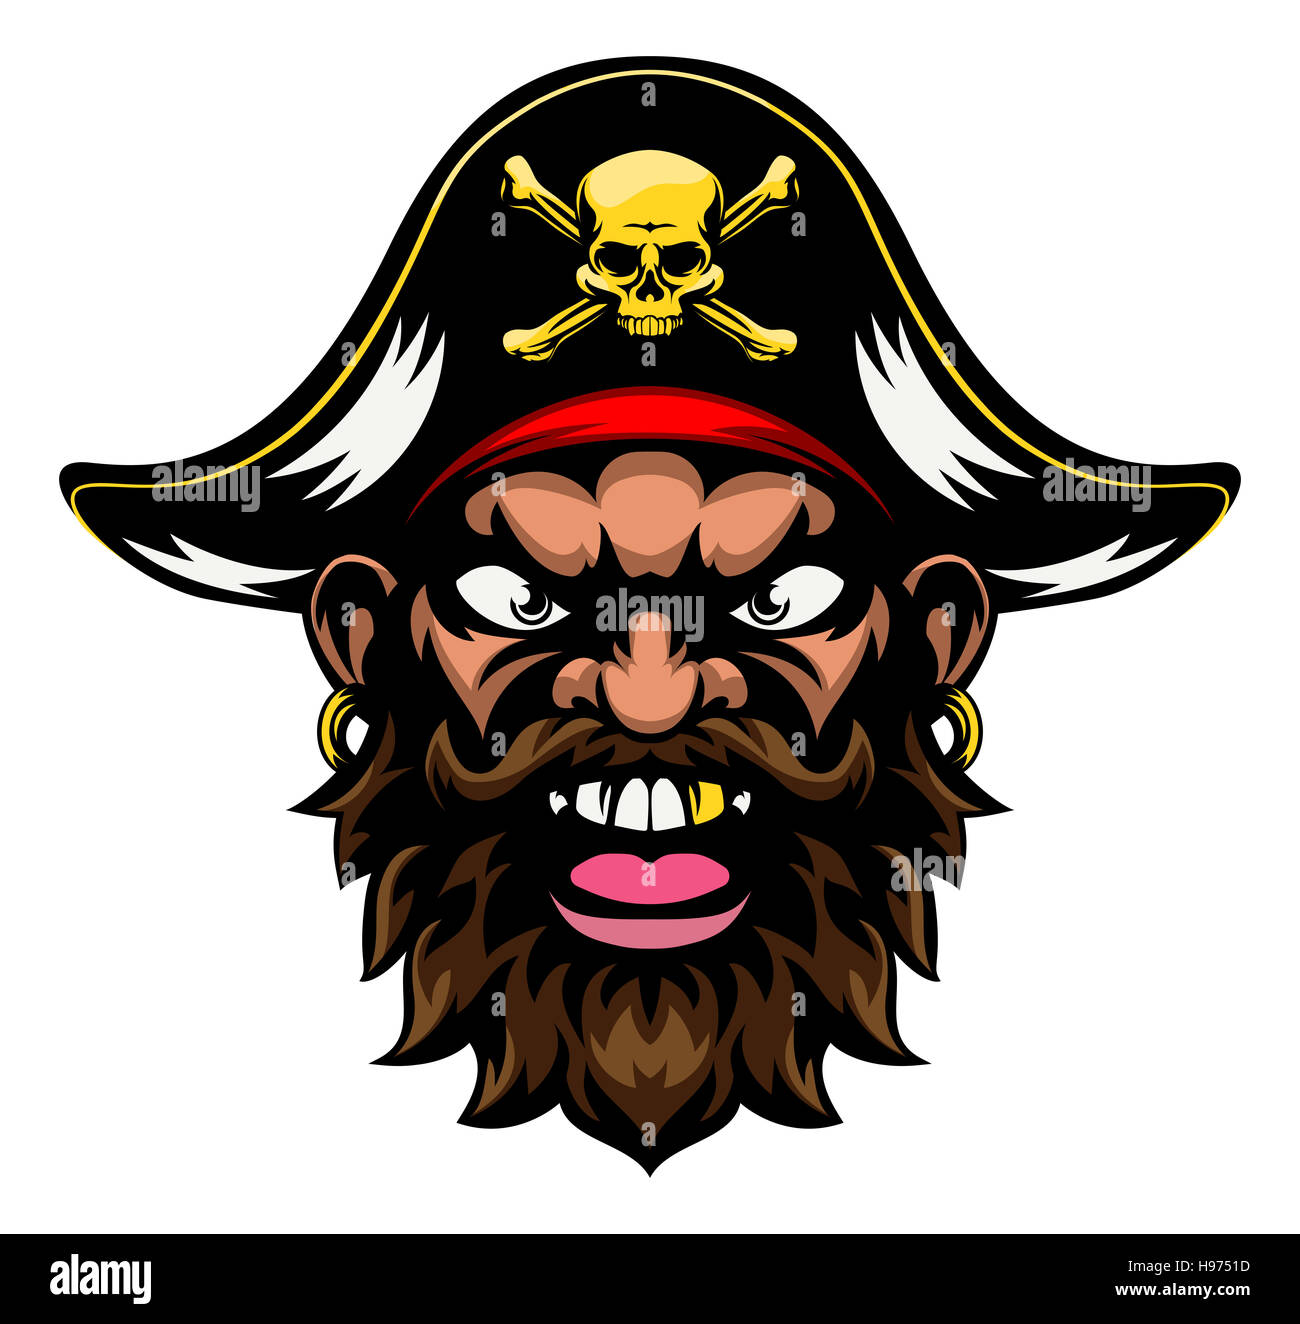 a mean looking cartoon pirate sports mascot stock photo royalty